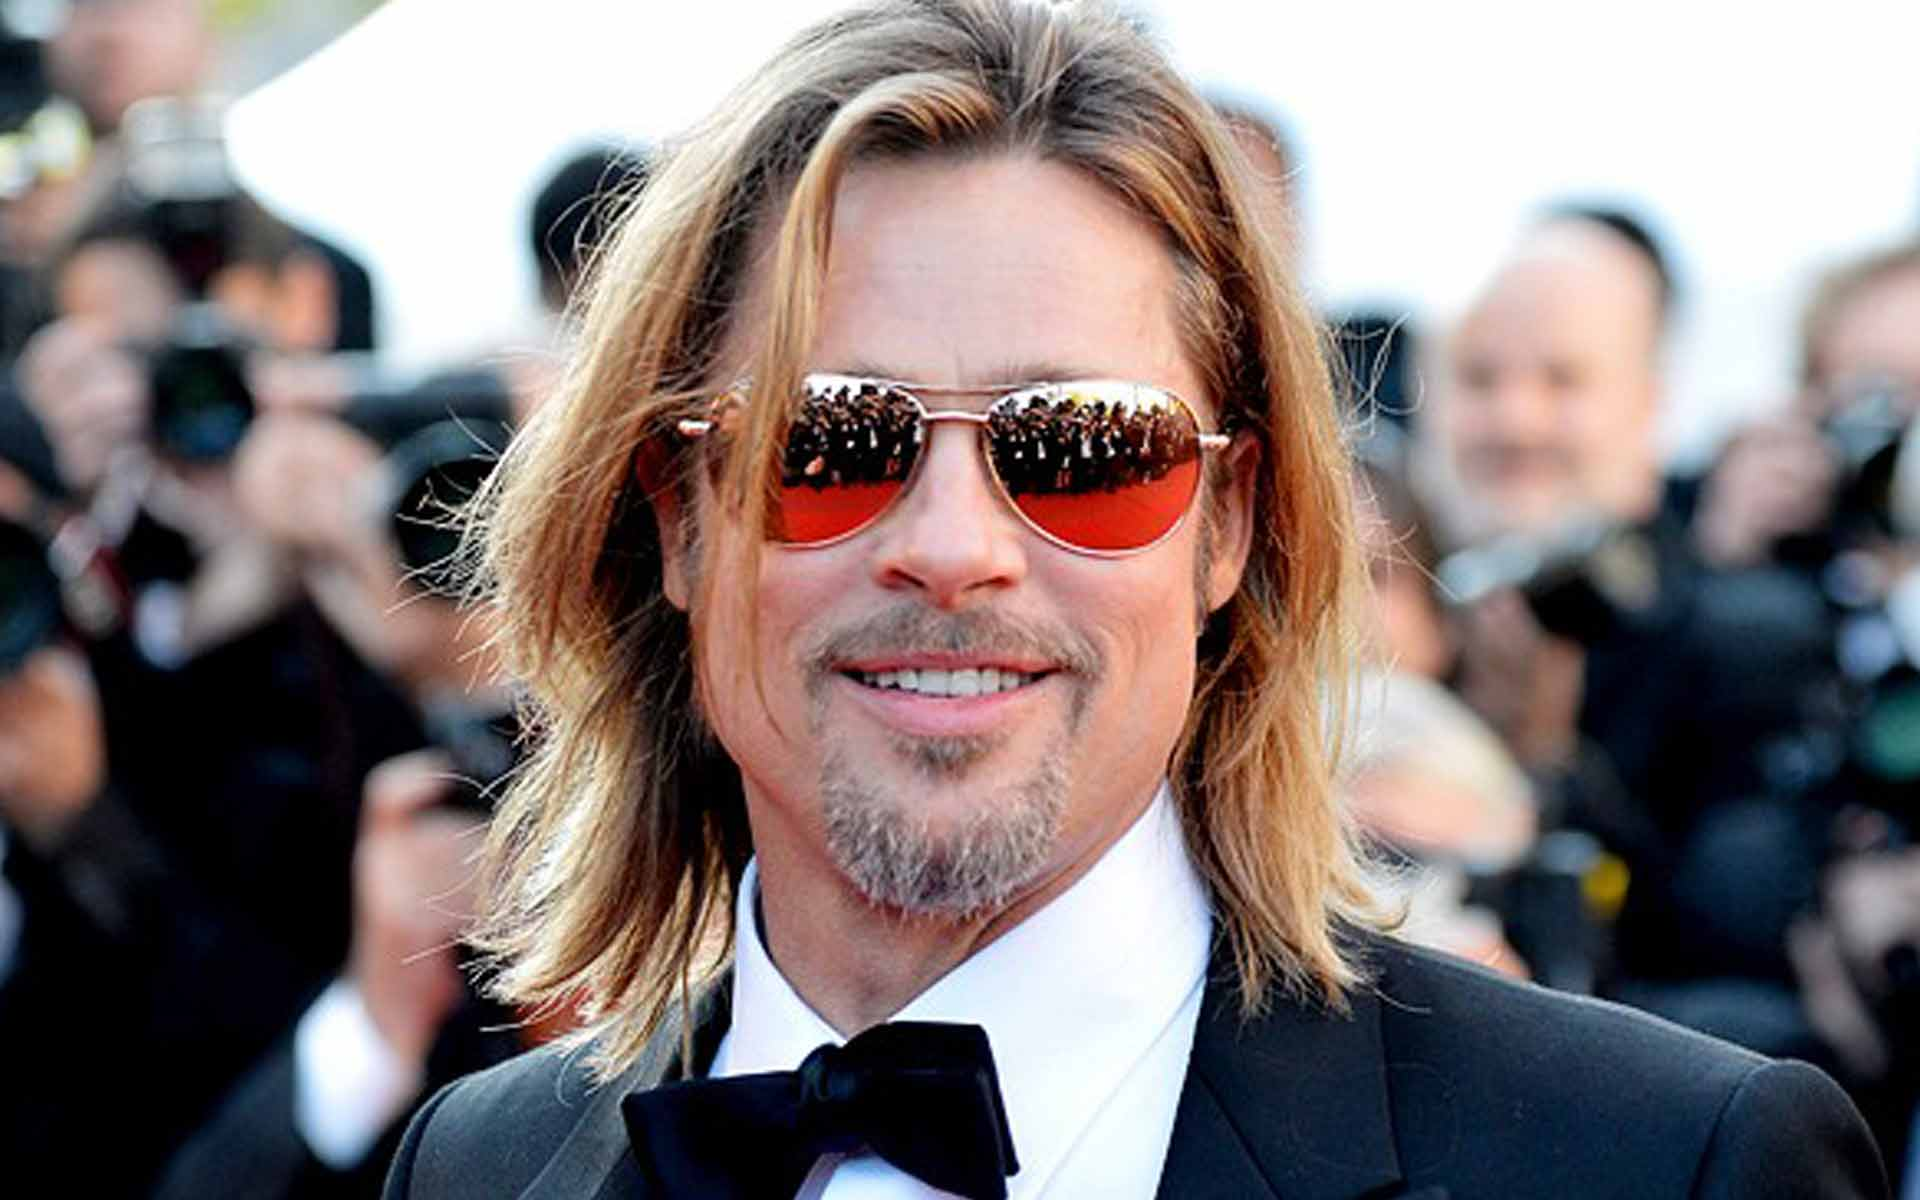 Brad Pitt Wears $1,250 Sunglasses to Cannes Film Festival!